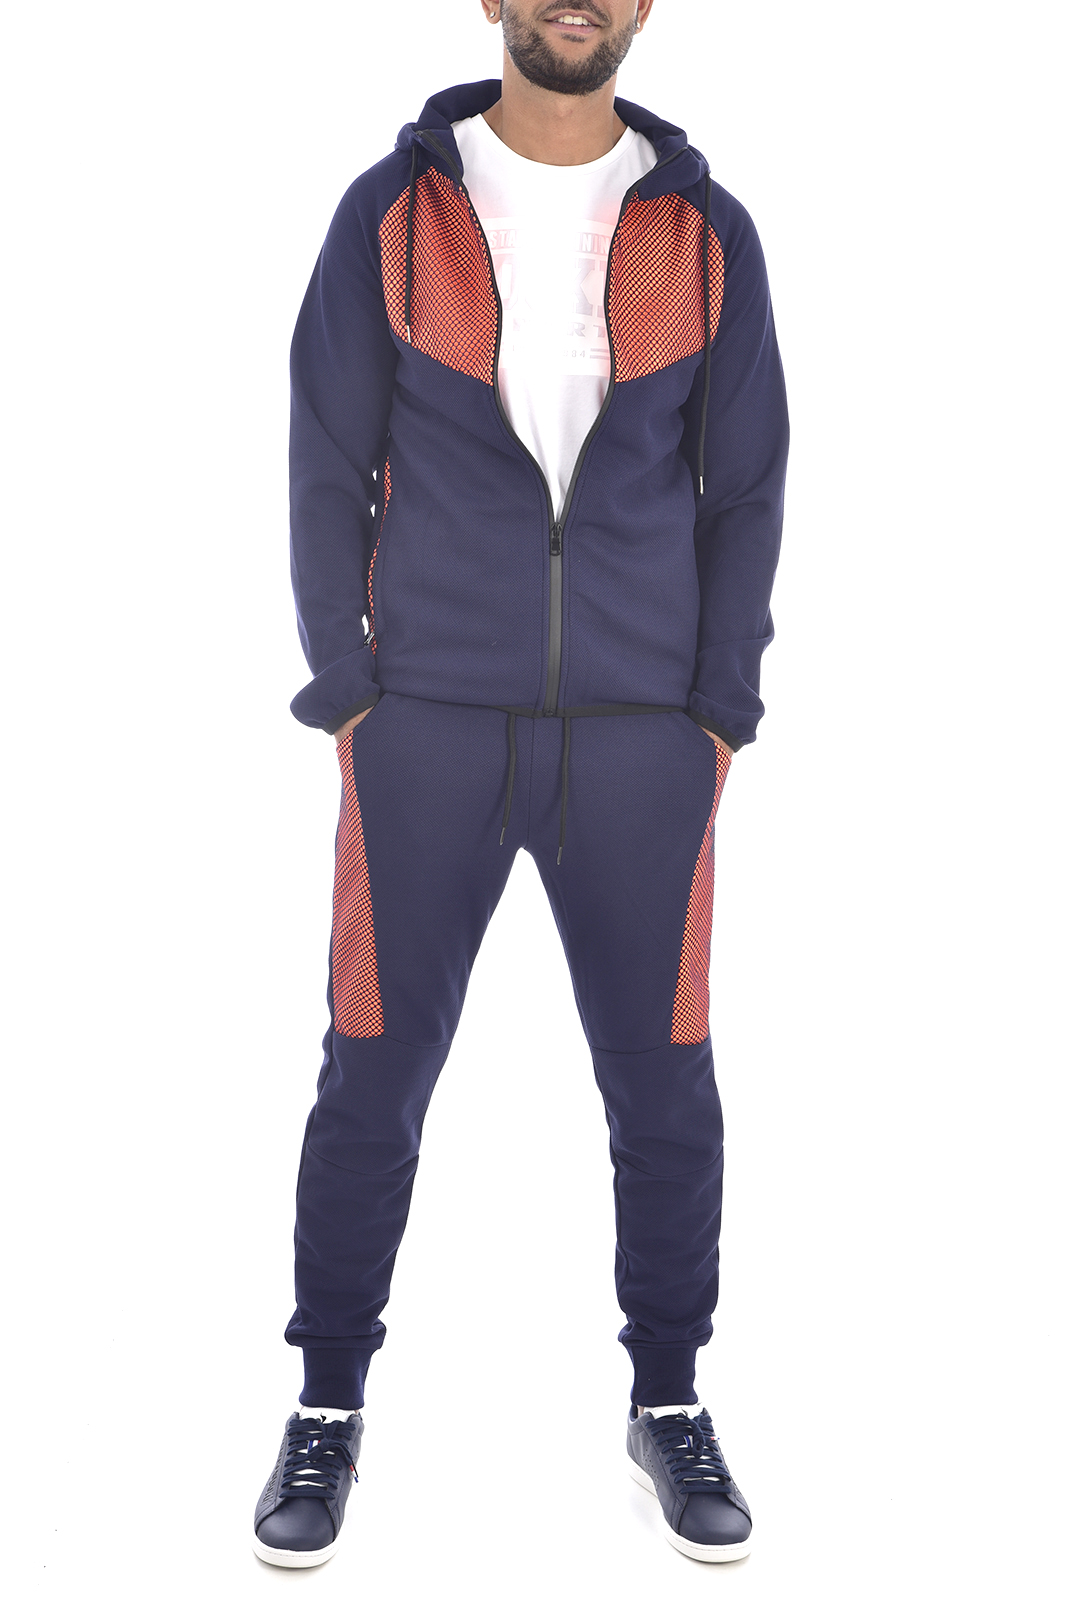 Vestes zippées  Goldenim paris 111 MARINE